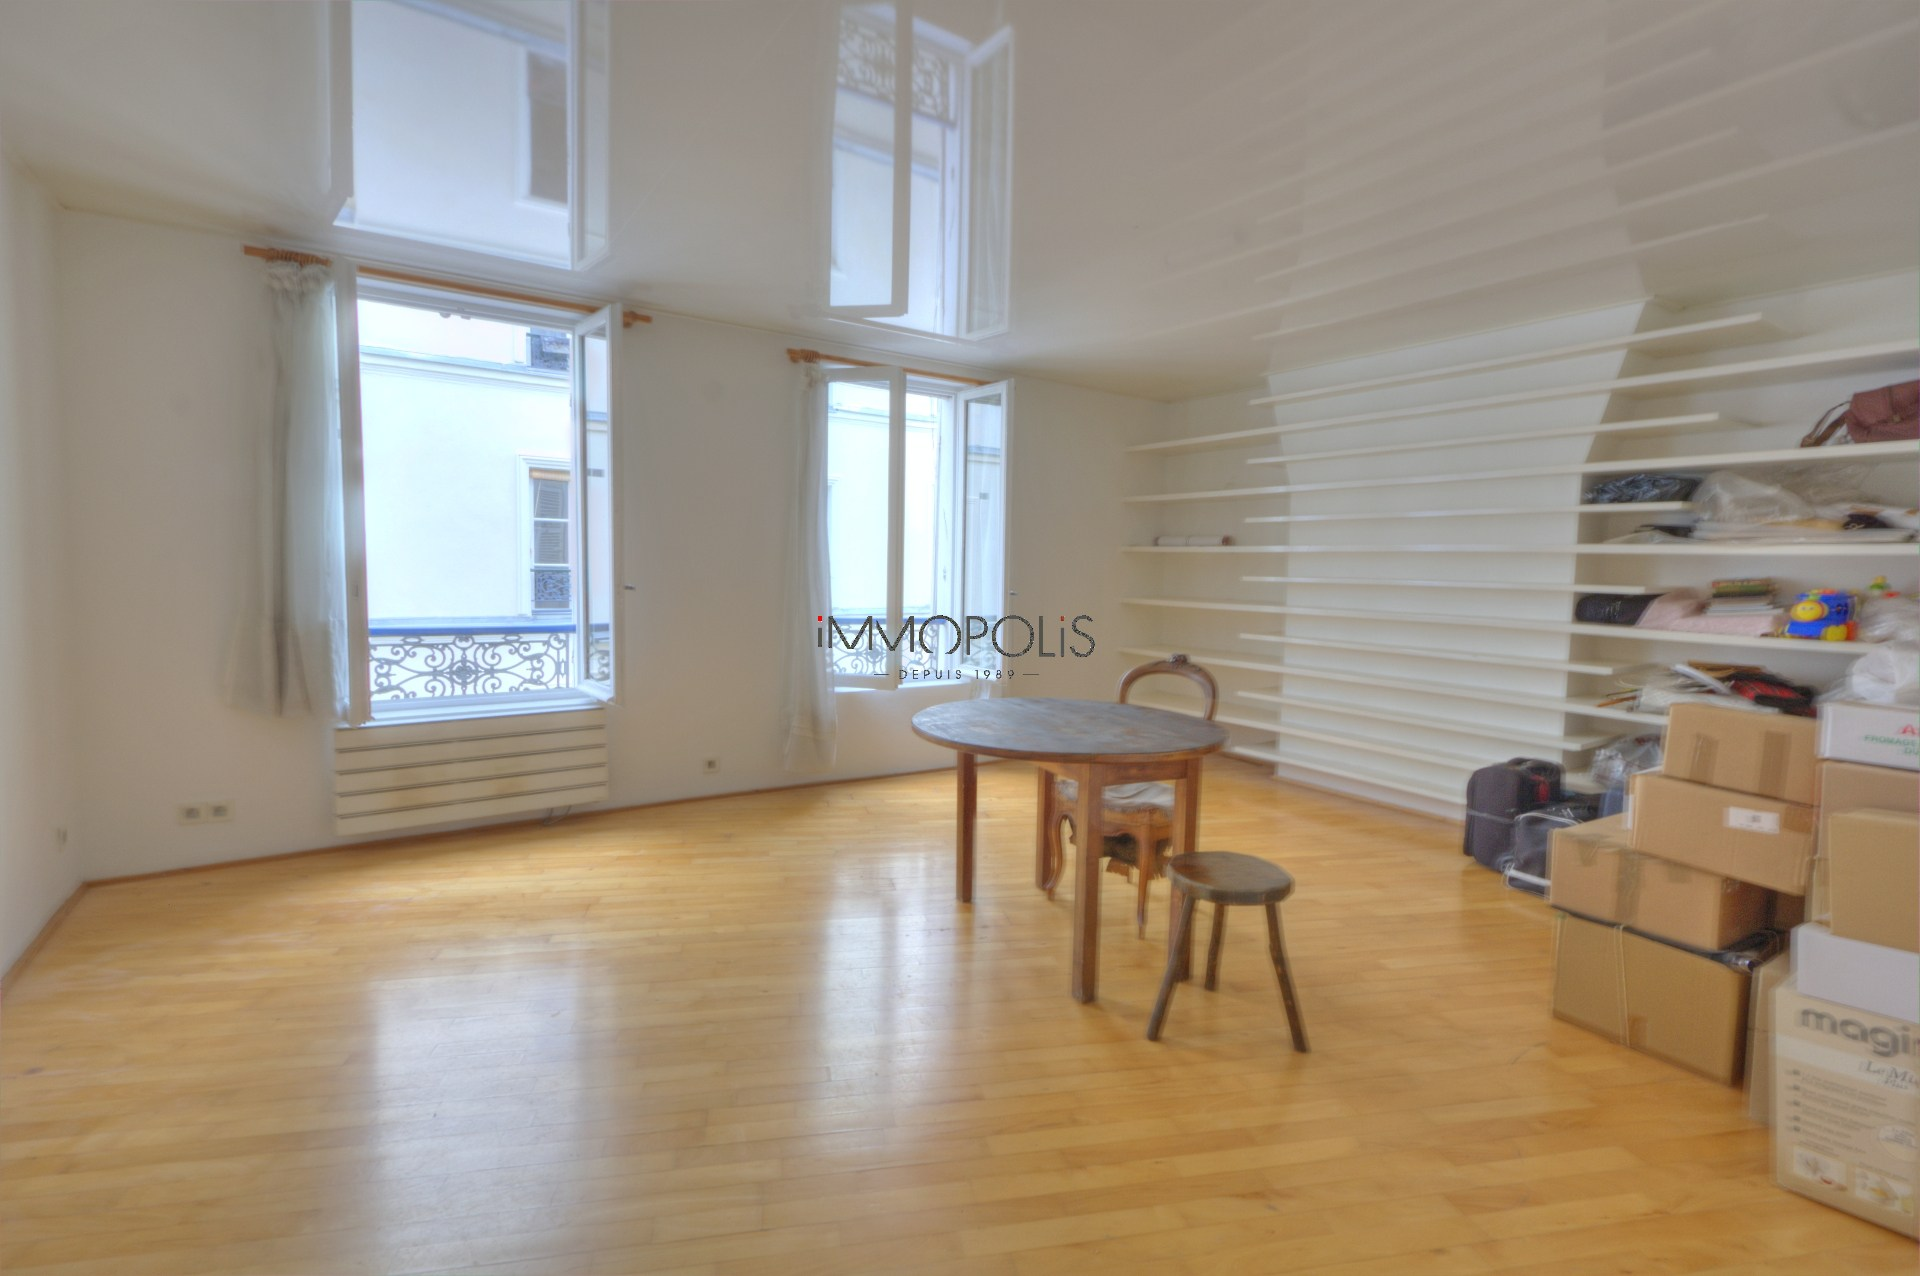 In the heart of the Abbesses, rue Berthe, beautiful 1 bedroom apartment with a perfect plan, in good condition, crossing onto a quiet street and open courtyard! 8